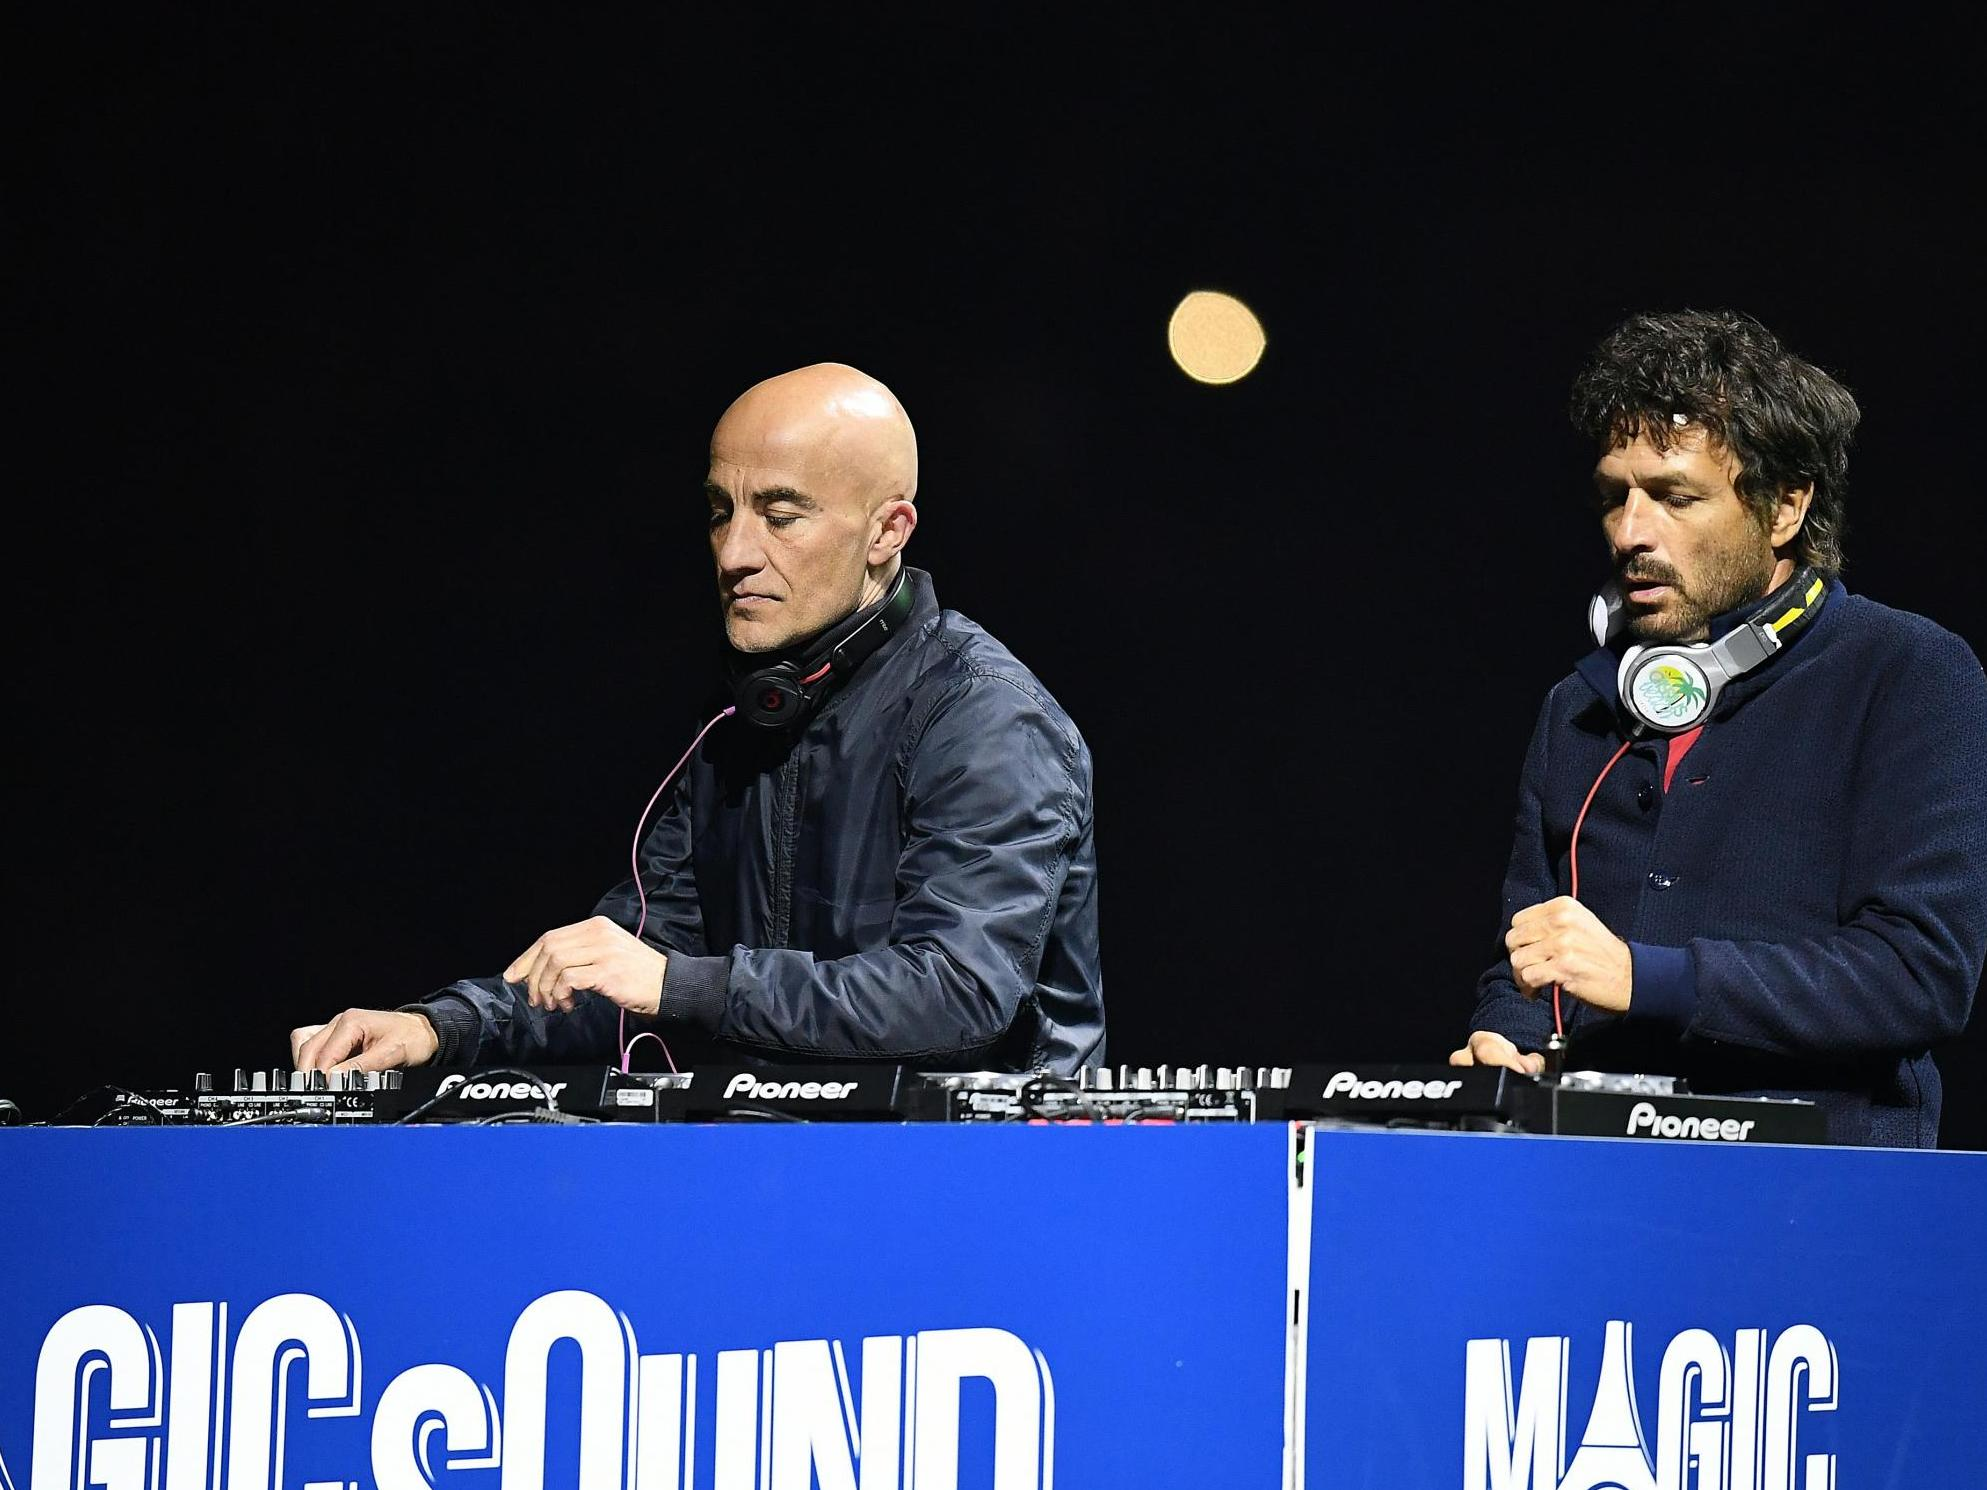 Philippe Zdar death: Hot Chip and Mark Ronson lead tributes to Cassius producer and DJ